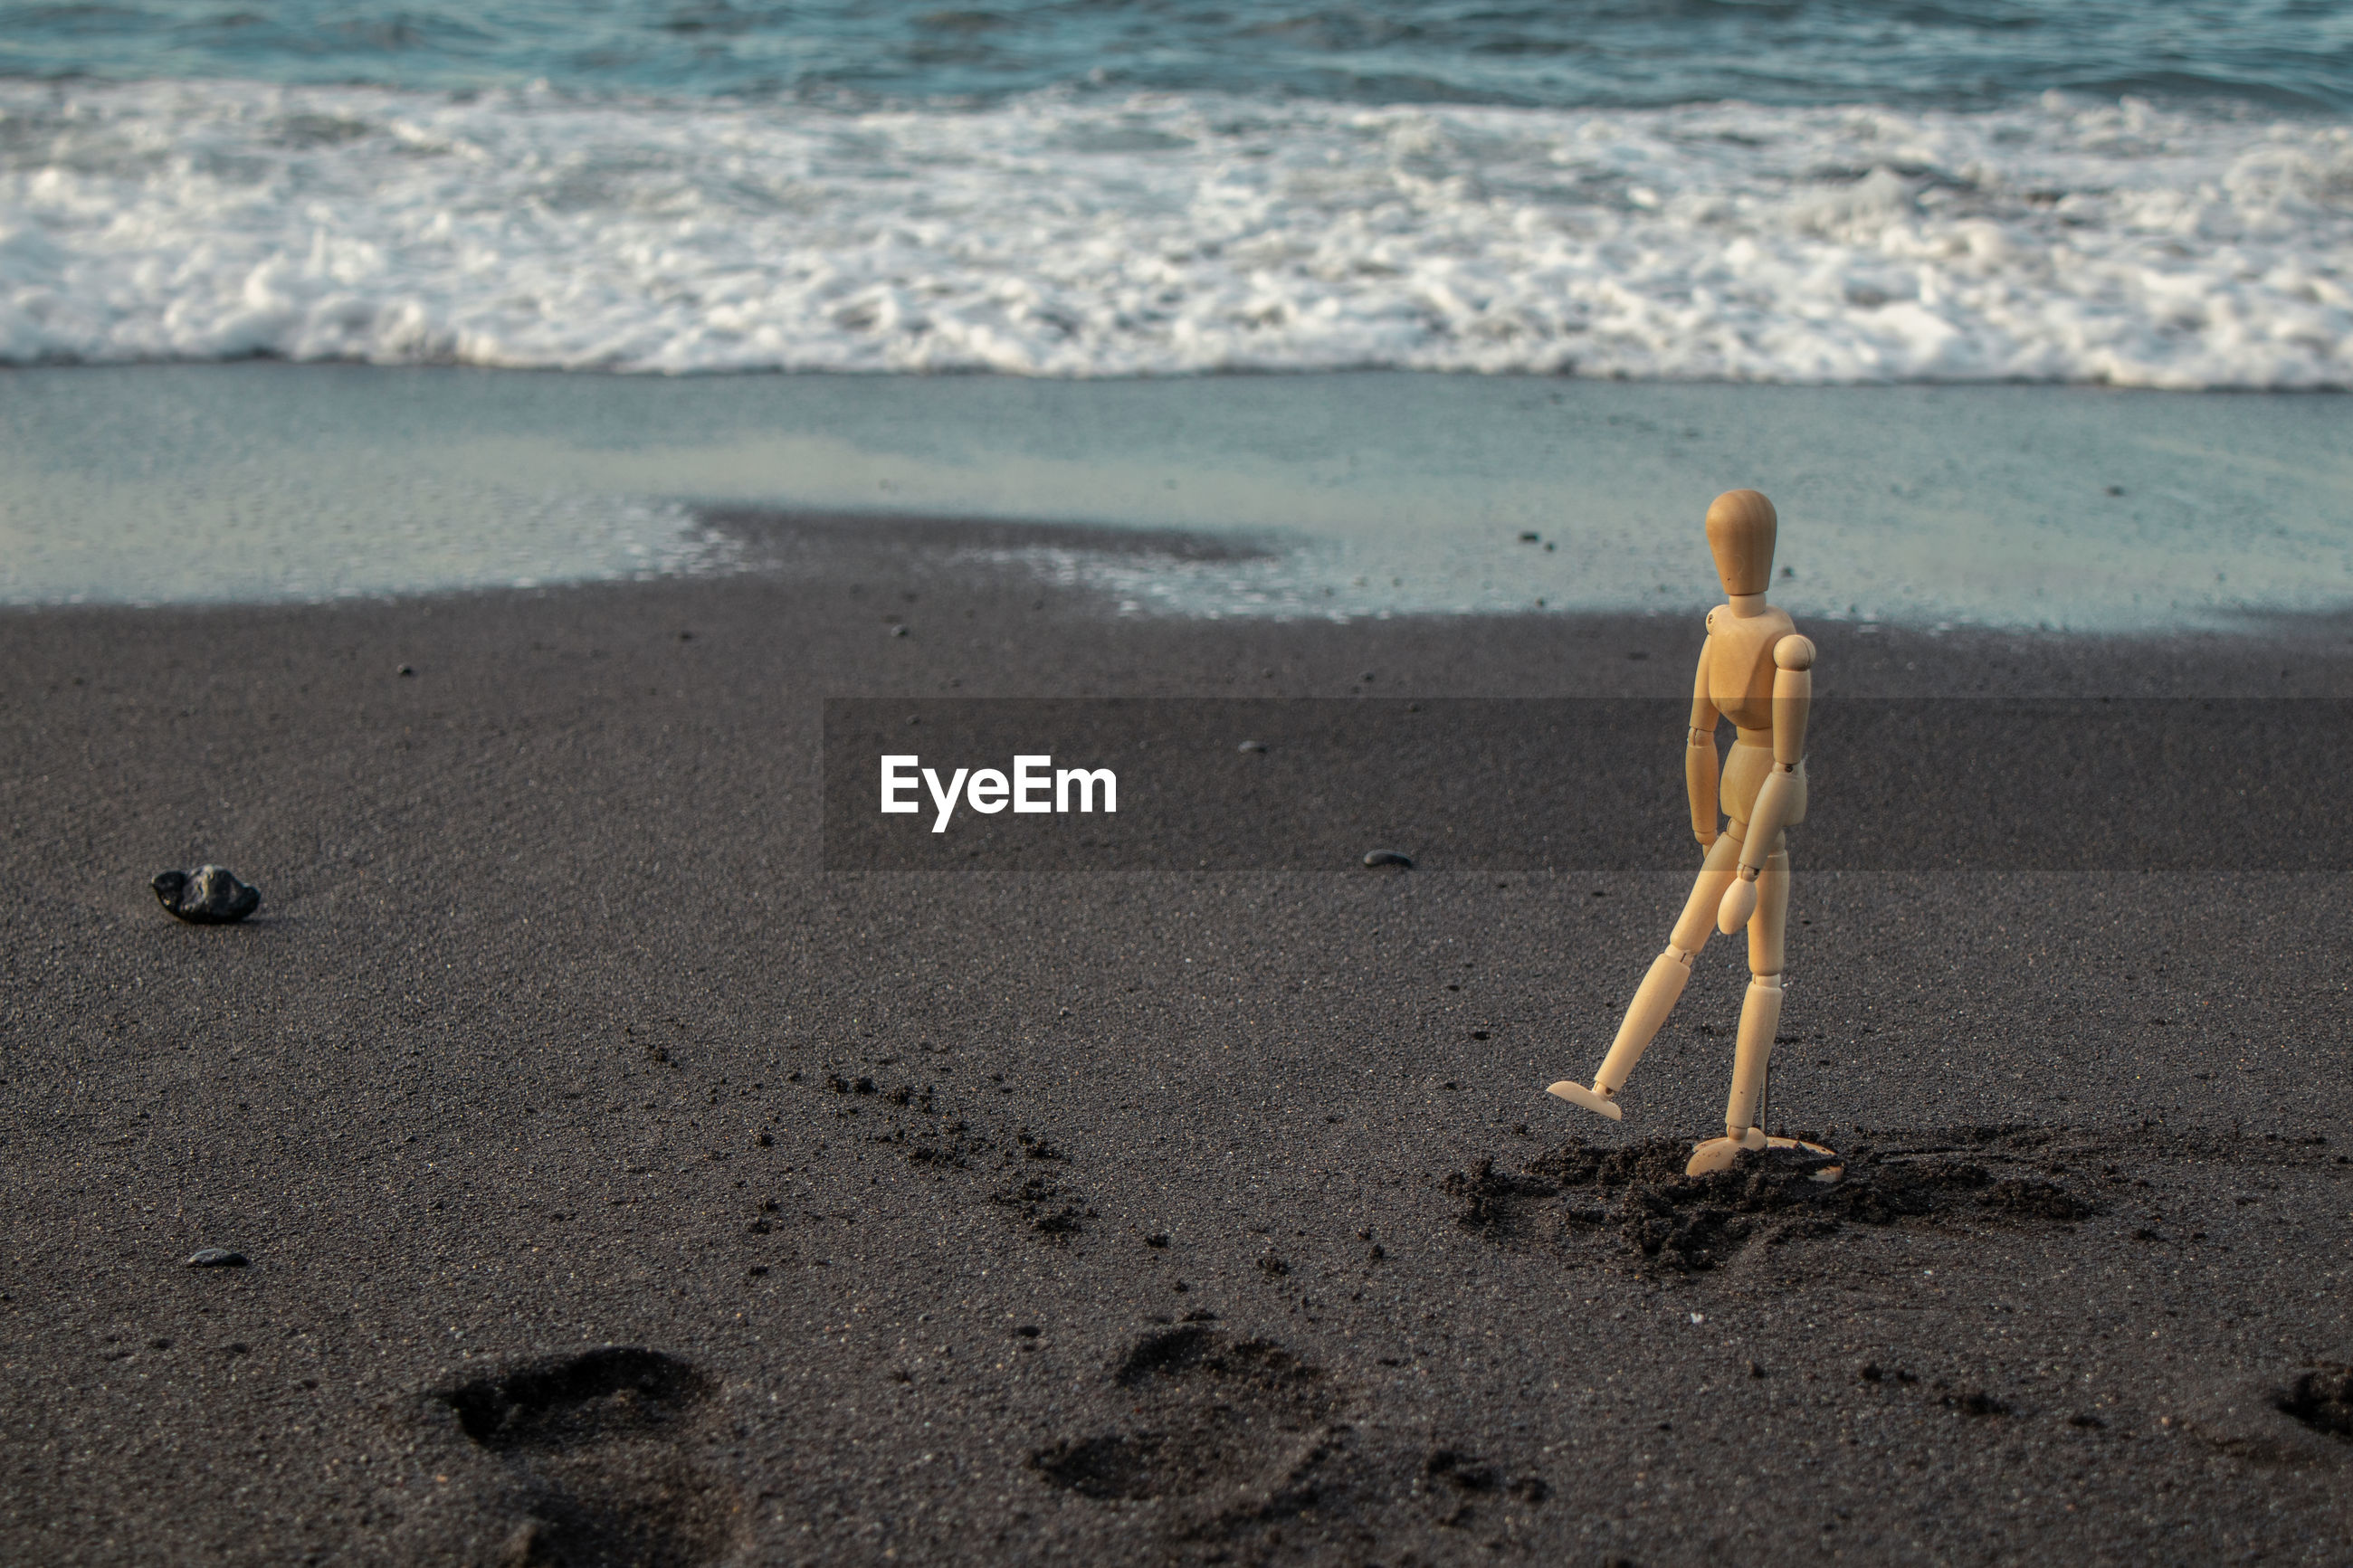 A wooden dummy walks along the beach with black sand